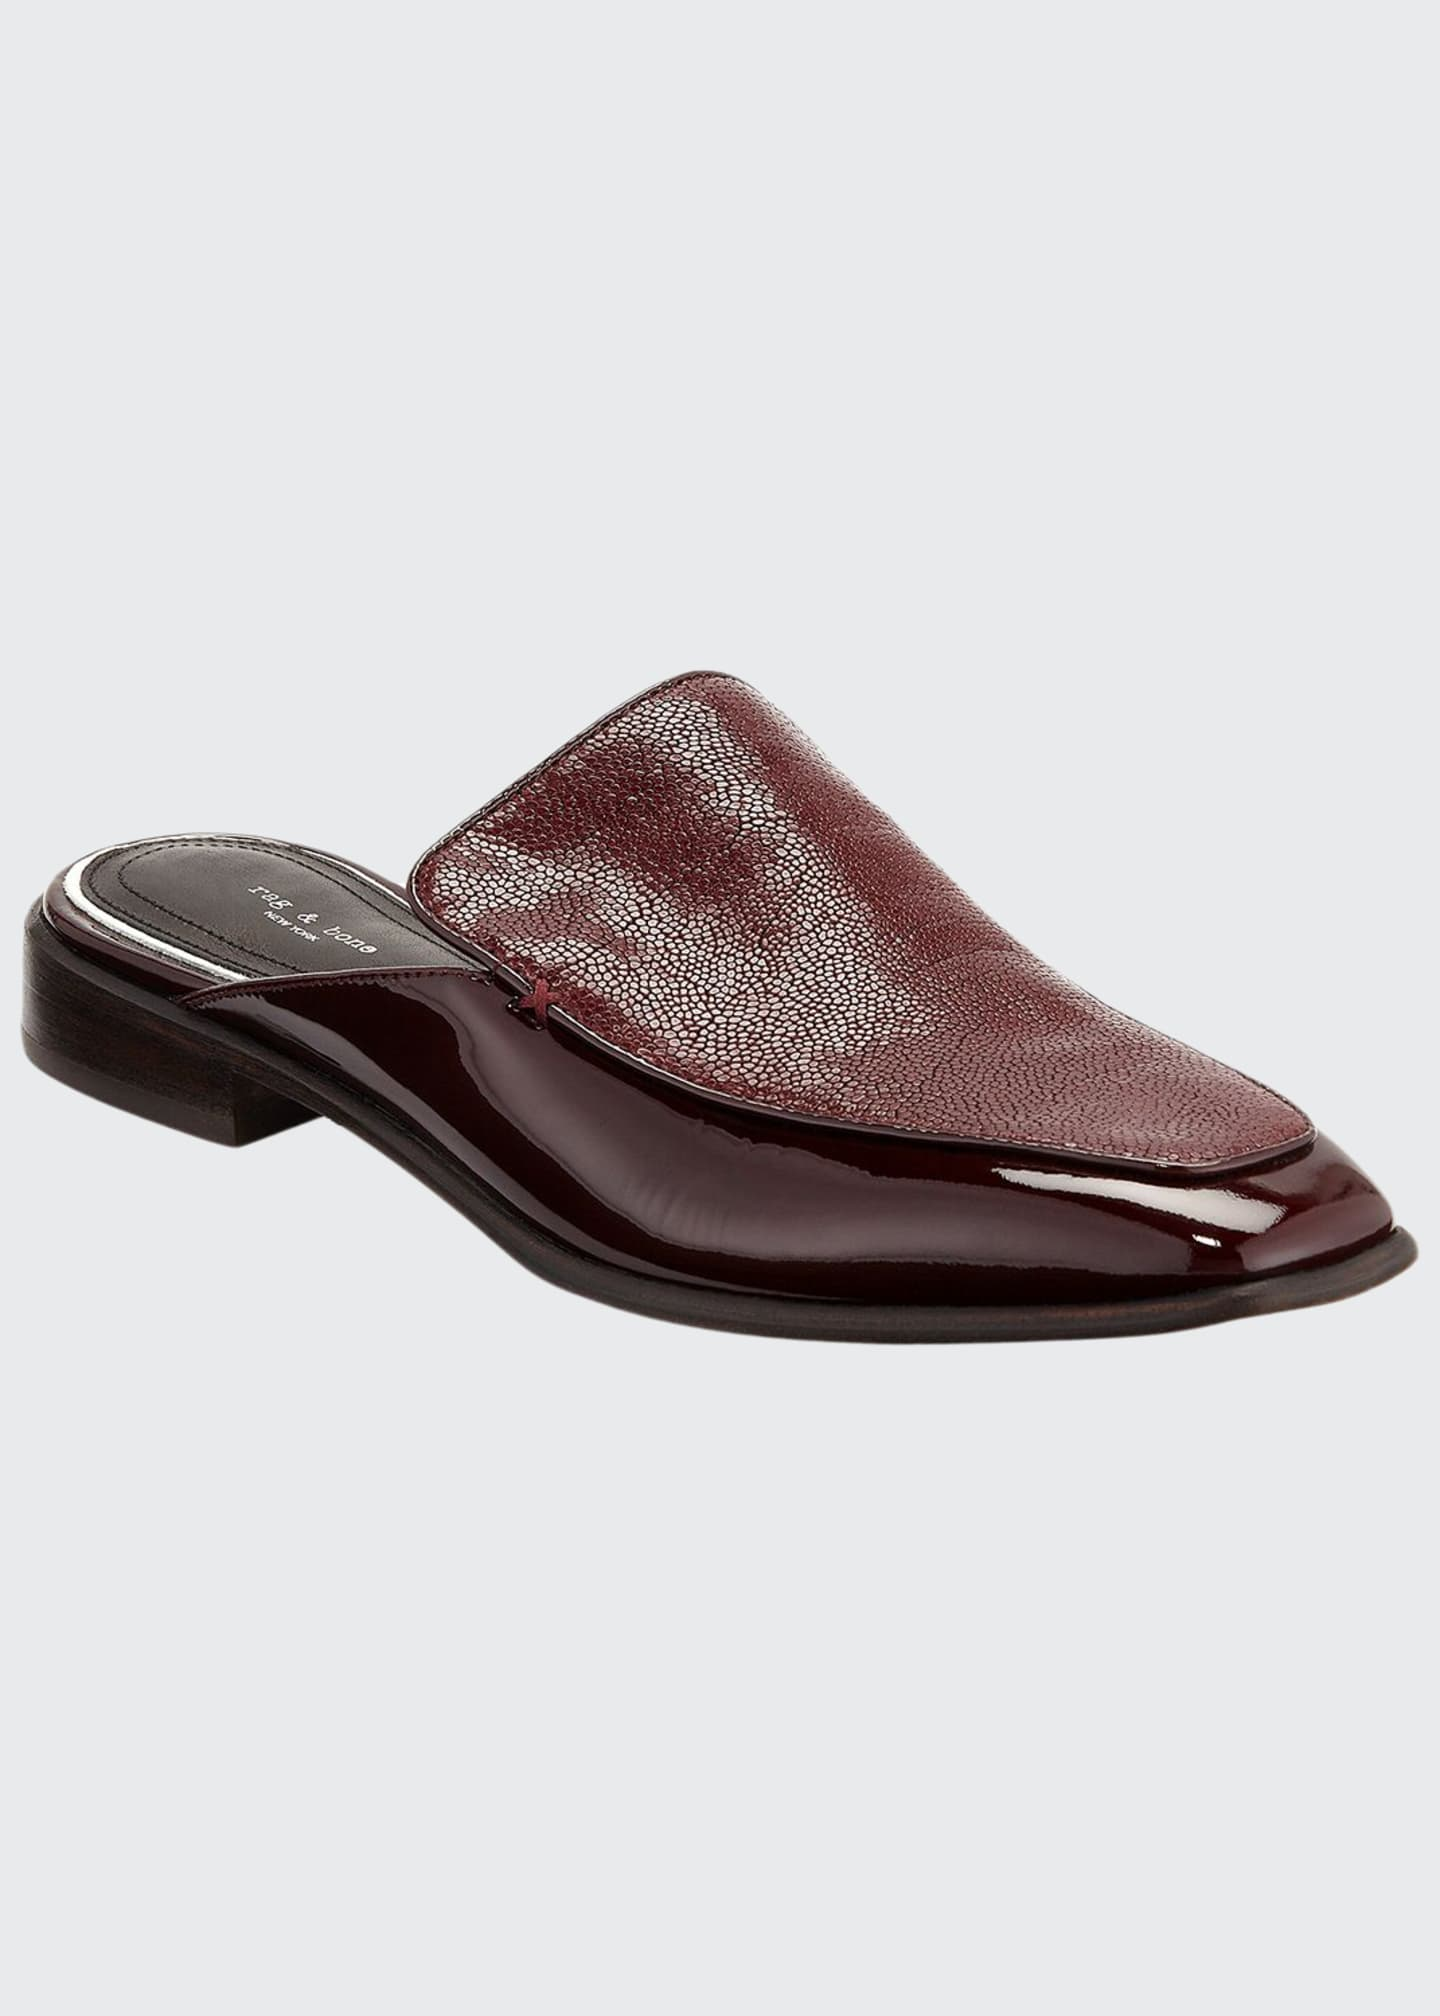 Rag & Bone Aslen Flat Loafer Mules